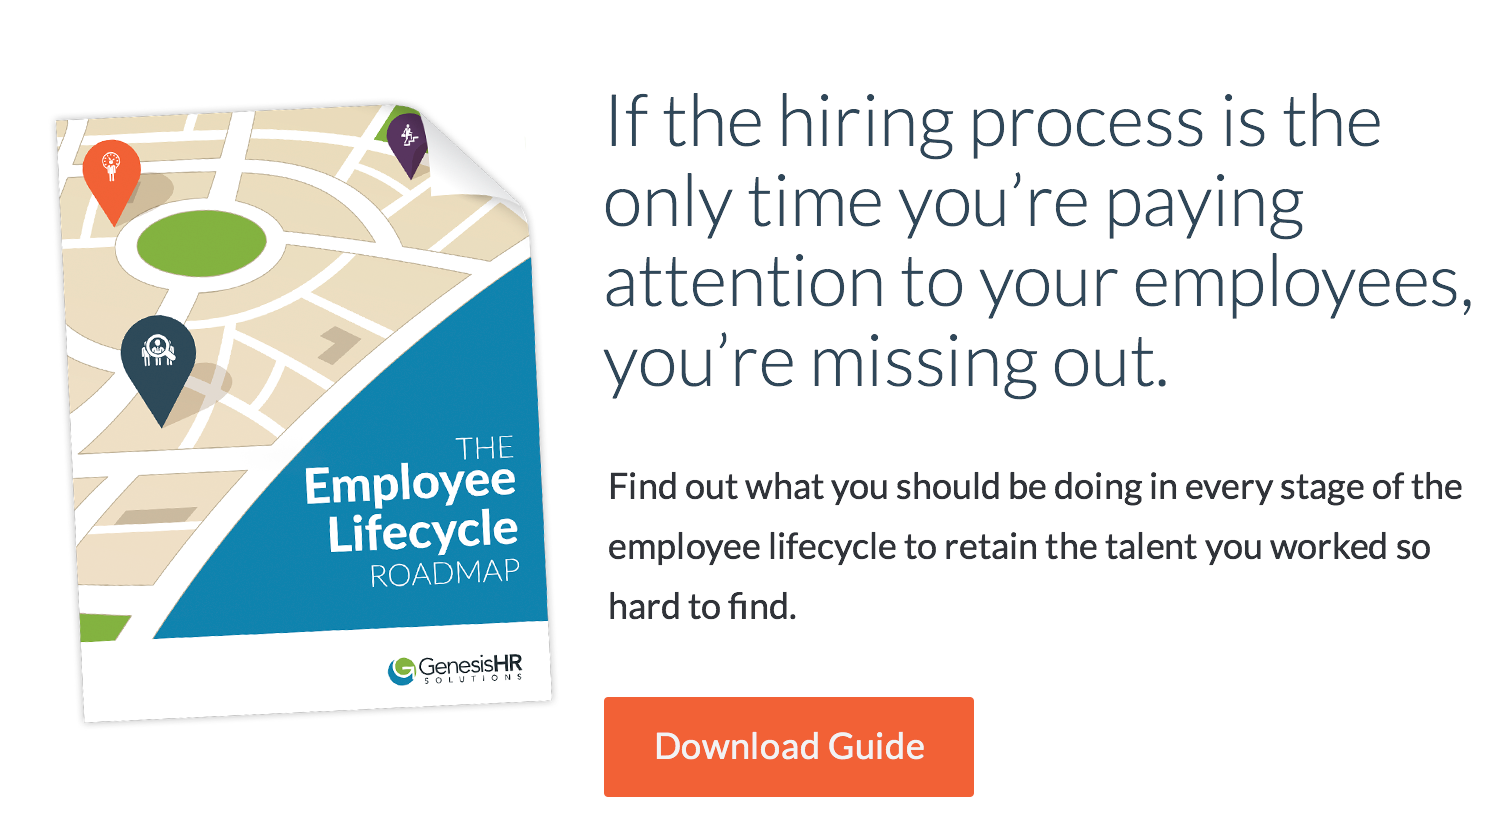 Download The Employee Lifecycle Roadmap